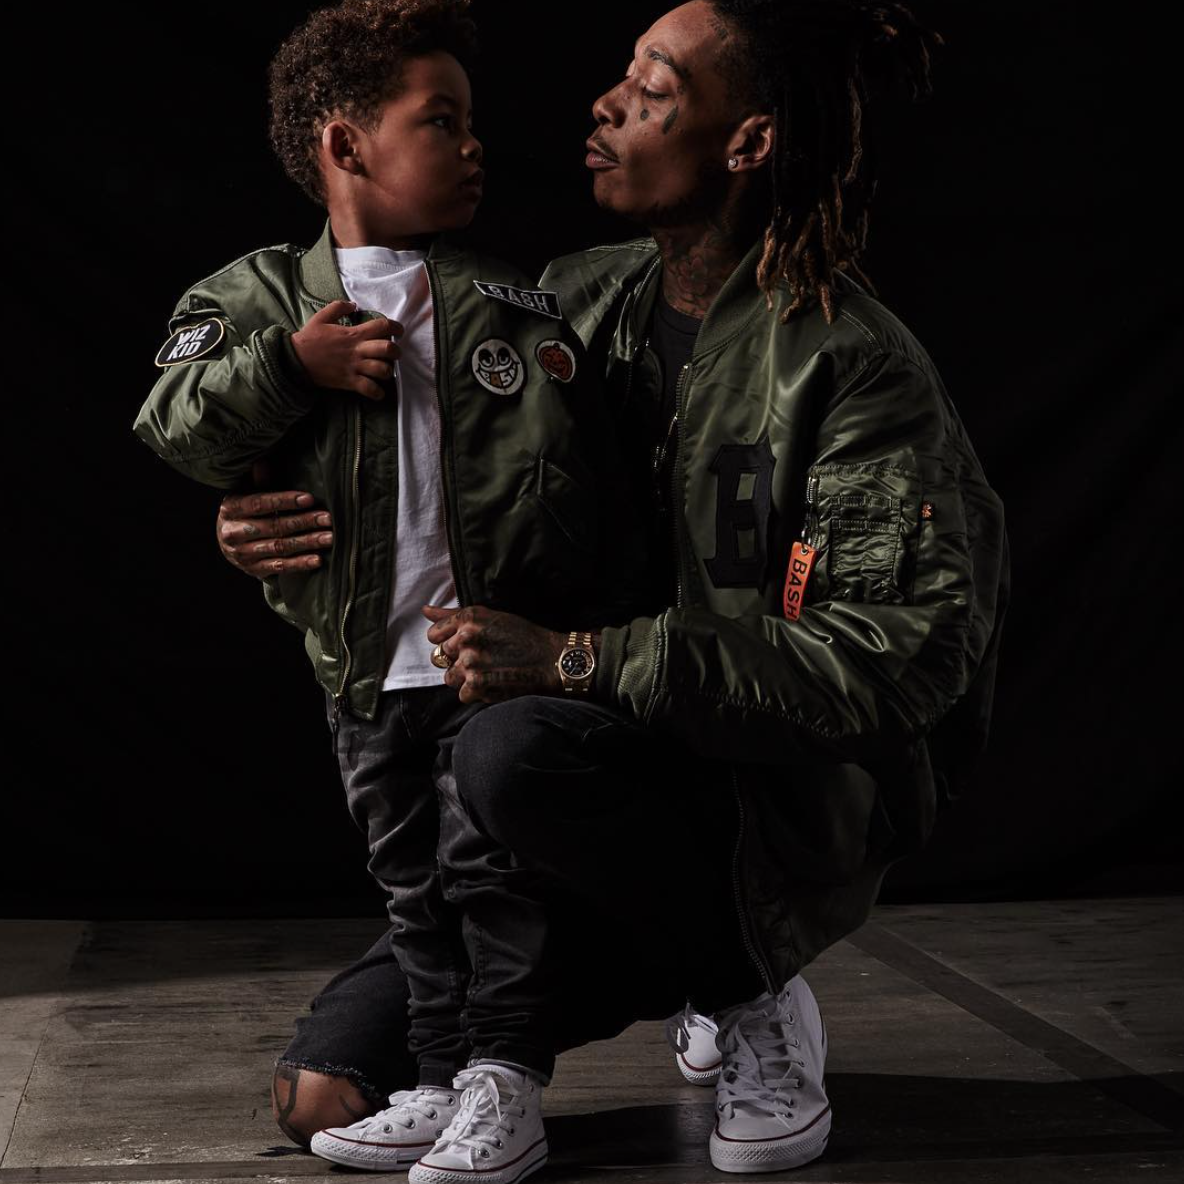 Pictures of wiz khalifa pictures of celebrities - Wiz Khalifa And His Son Sebastian Taylor Thomaz Love Their Bombers From The Alpha X